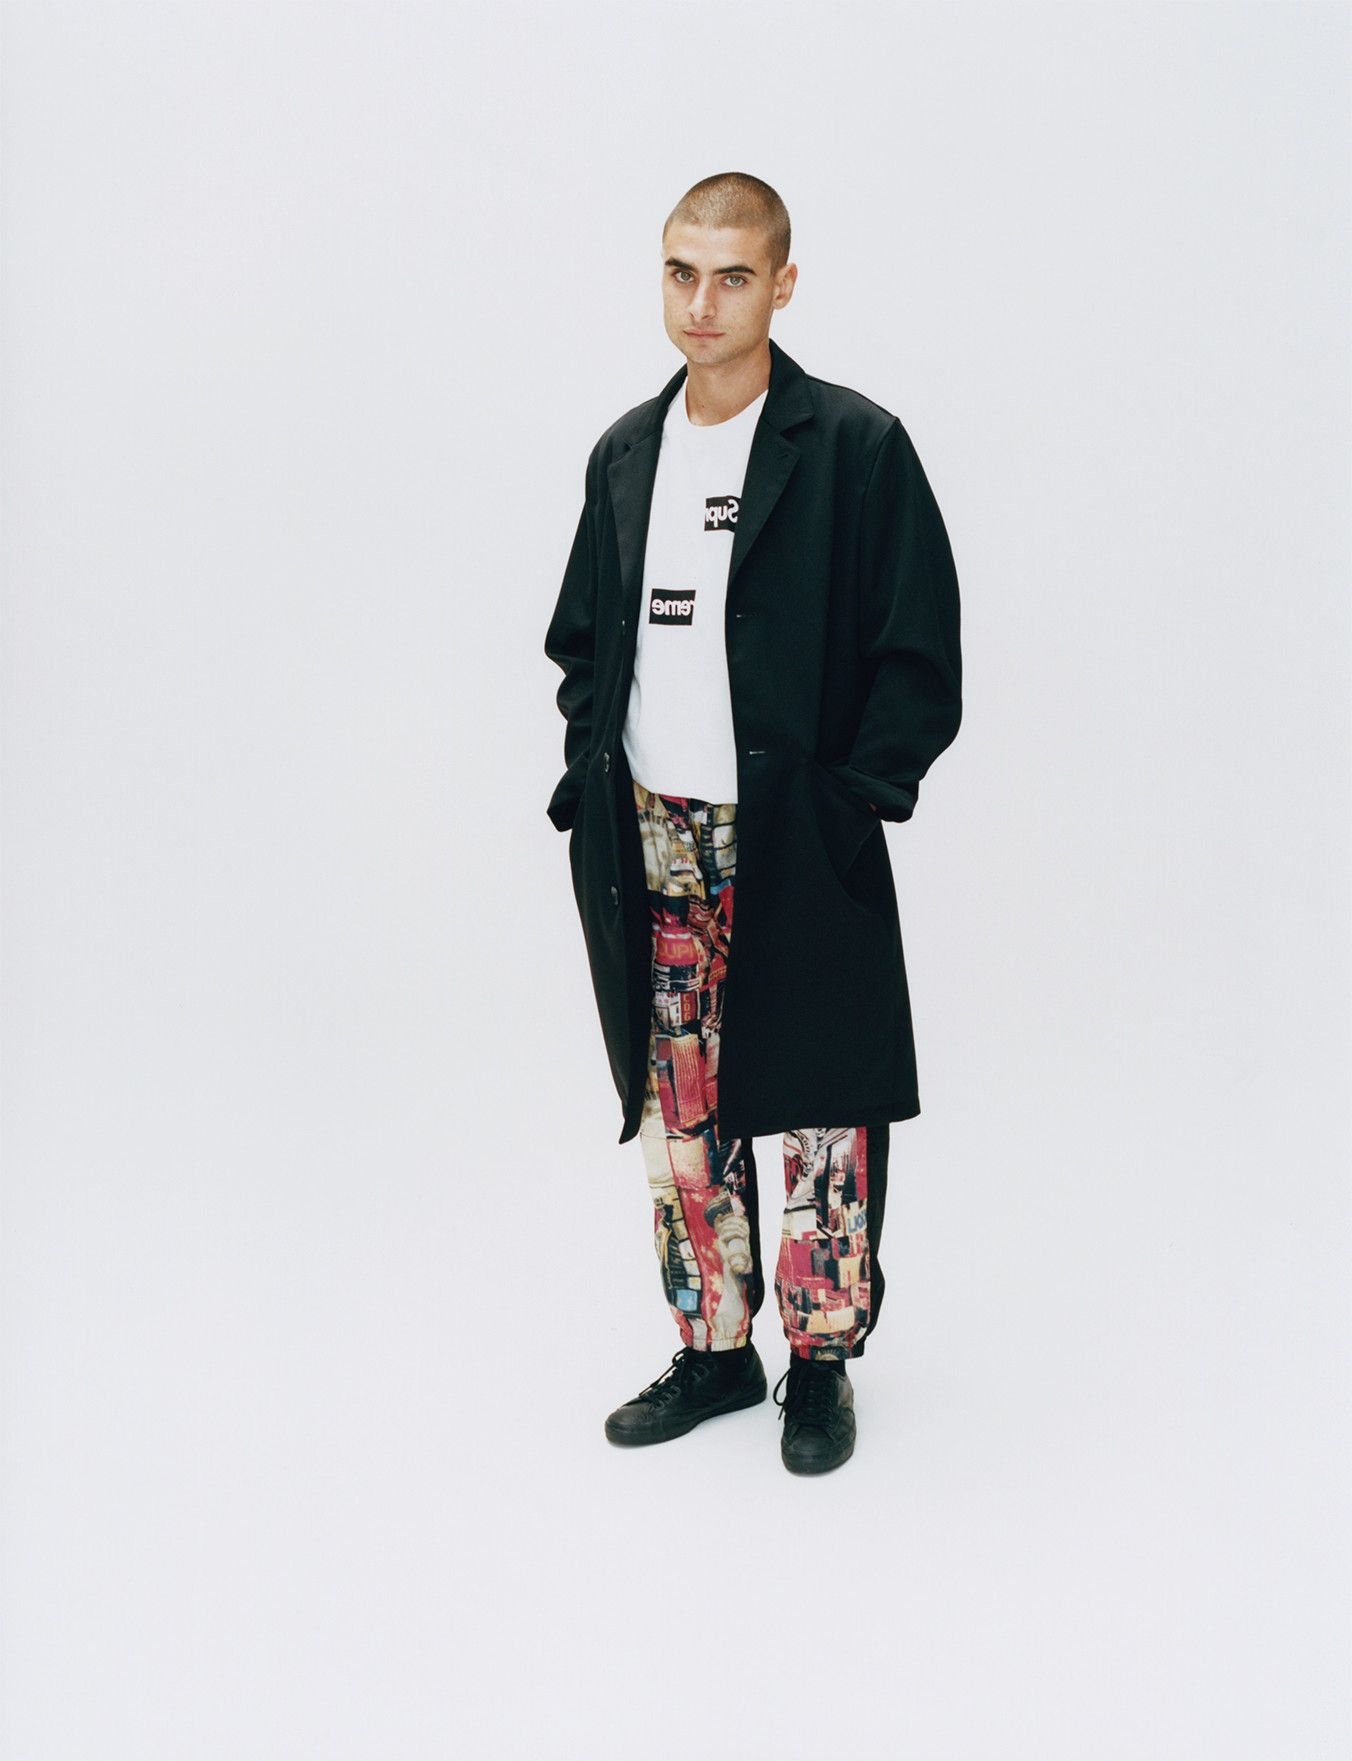 94cfba09fc0 Supreme CDG Shirt Fall Winter 2018 Collection Release Nike Air Force COMME  des GARÇONS jackets shirts sneakers waffle knit